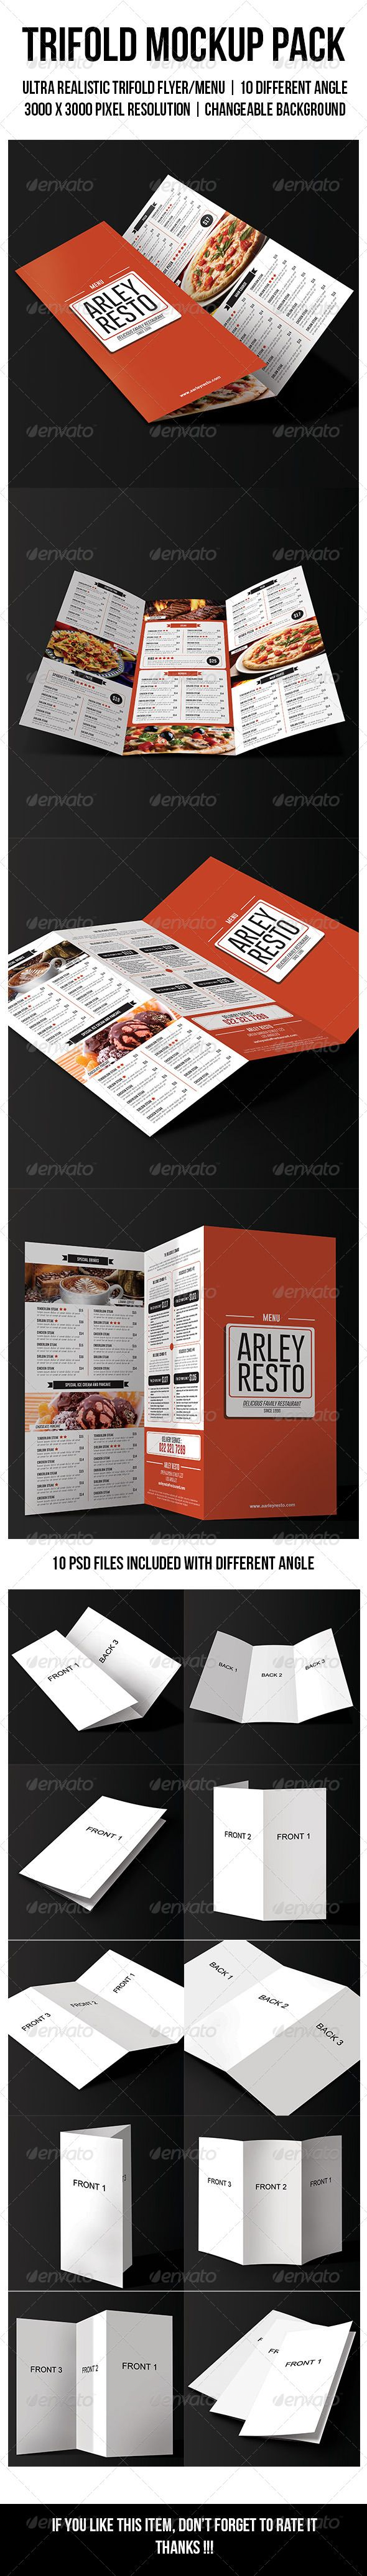 Trifold Mockup Pack Download: http://graphicriver.net/item/trifold-mockup-pack/7119651?ref=ksioks